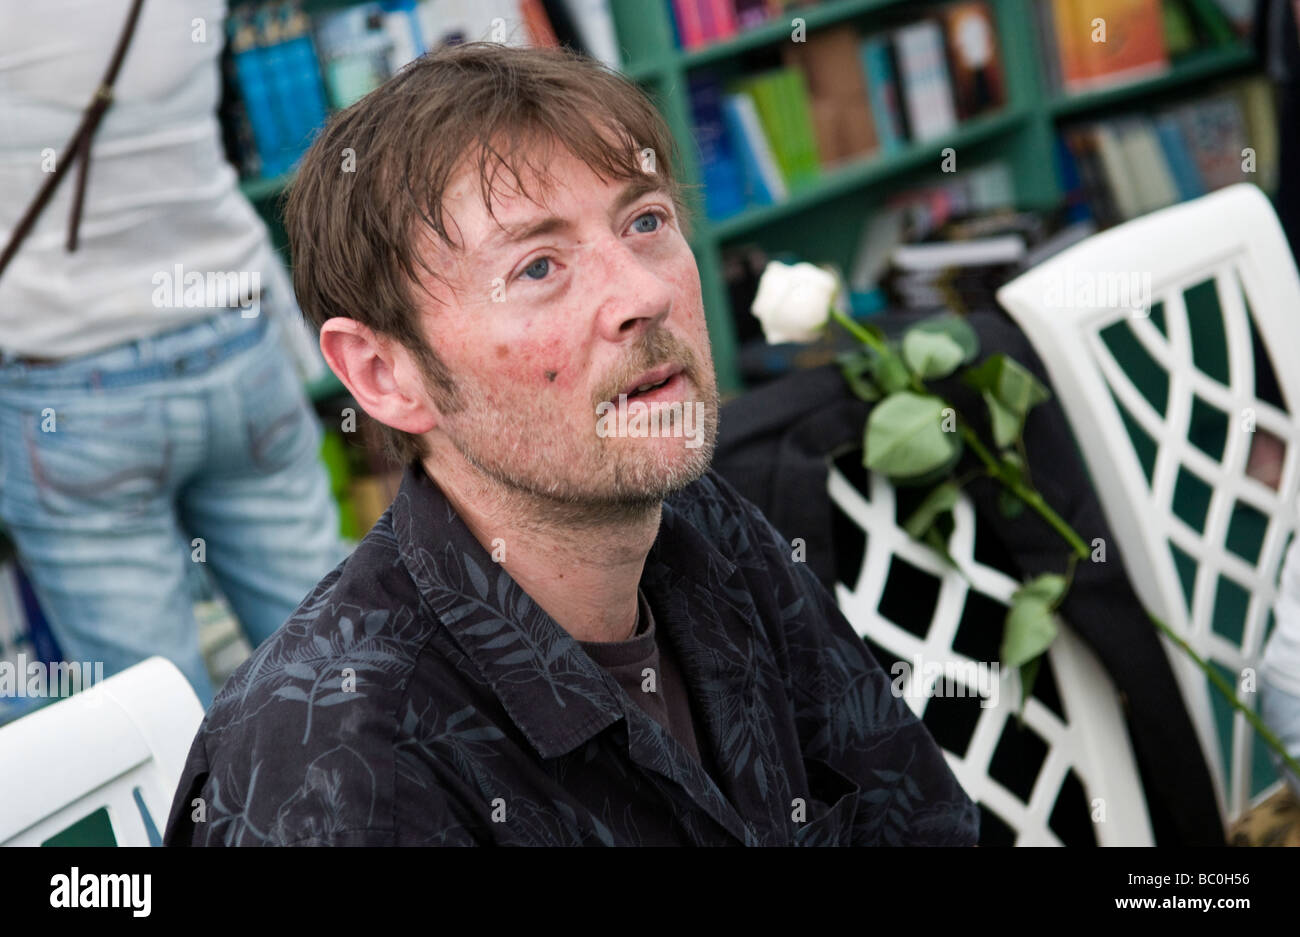 Mexican novelist DBC Pierre born Peter Warren Finlay in Australian pictured at Hay Festival 2009 - Stock Image